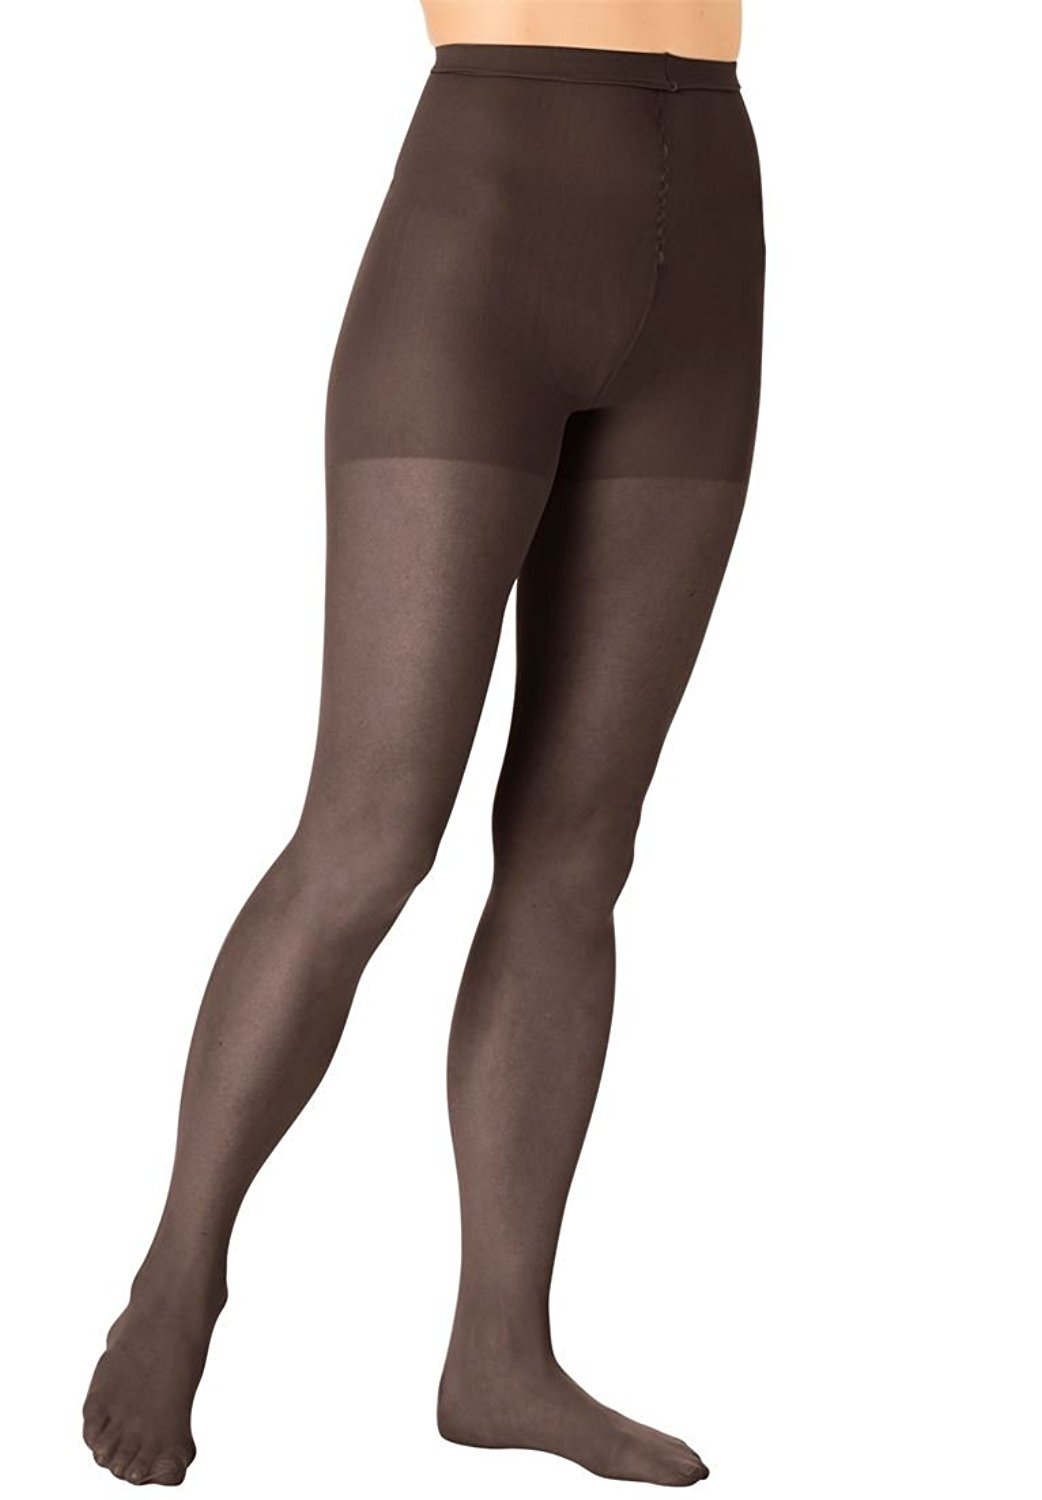 0ef5b8a787 ... Hose Control Top Sheer Stockings. 8.99. null. Get Quotations · Comfort  Choice Women's Plus Size 2-Pack Support Pantyhose